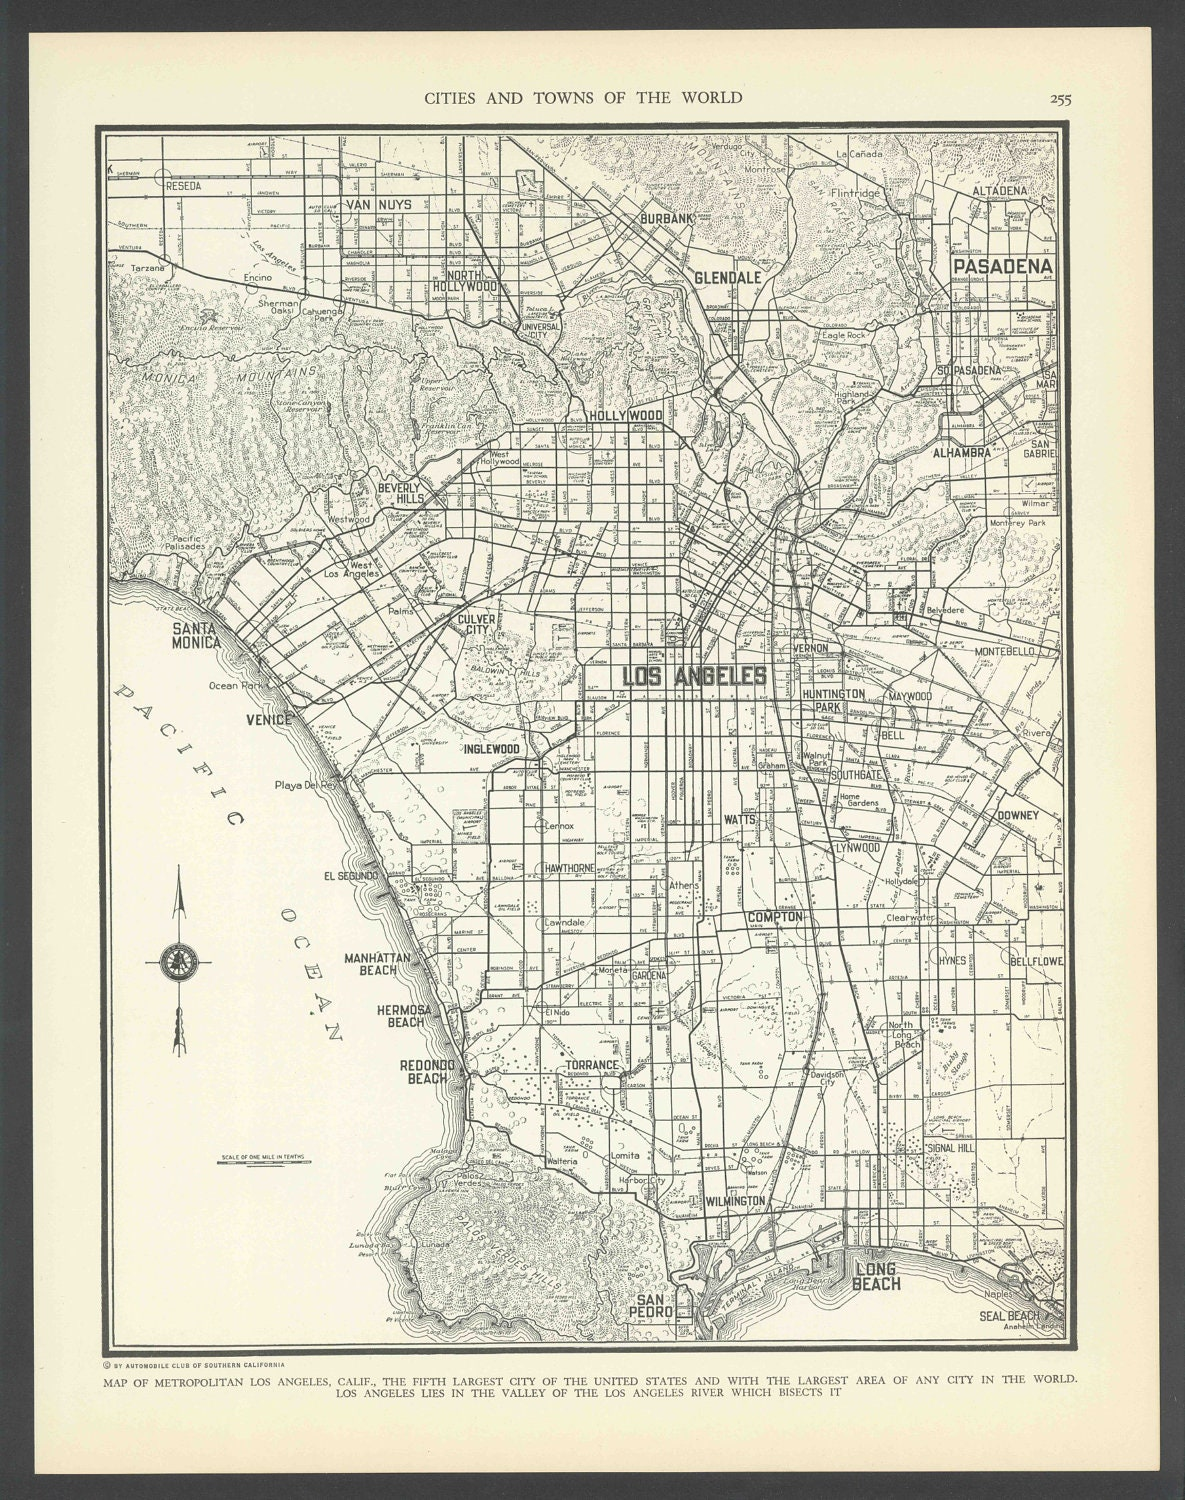 Vintage Street Map Los Angeles California From  Original - Los angeles map vintage